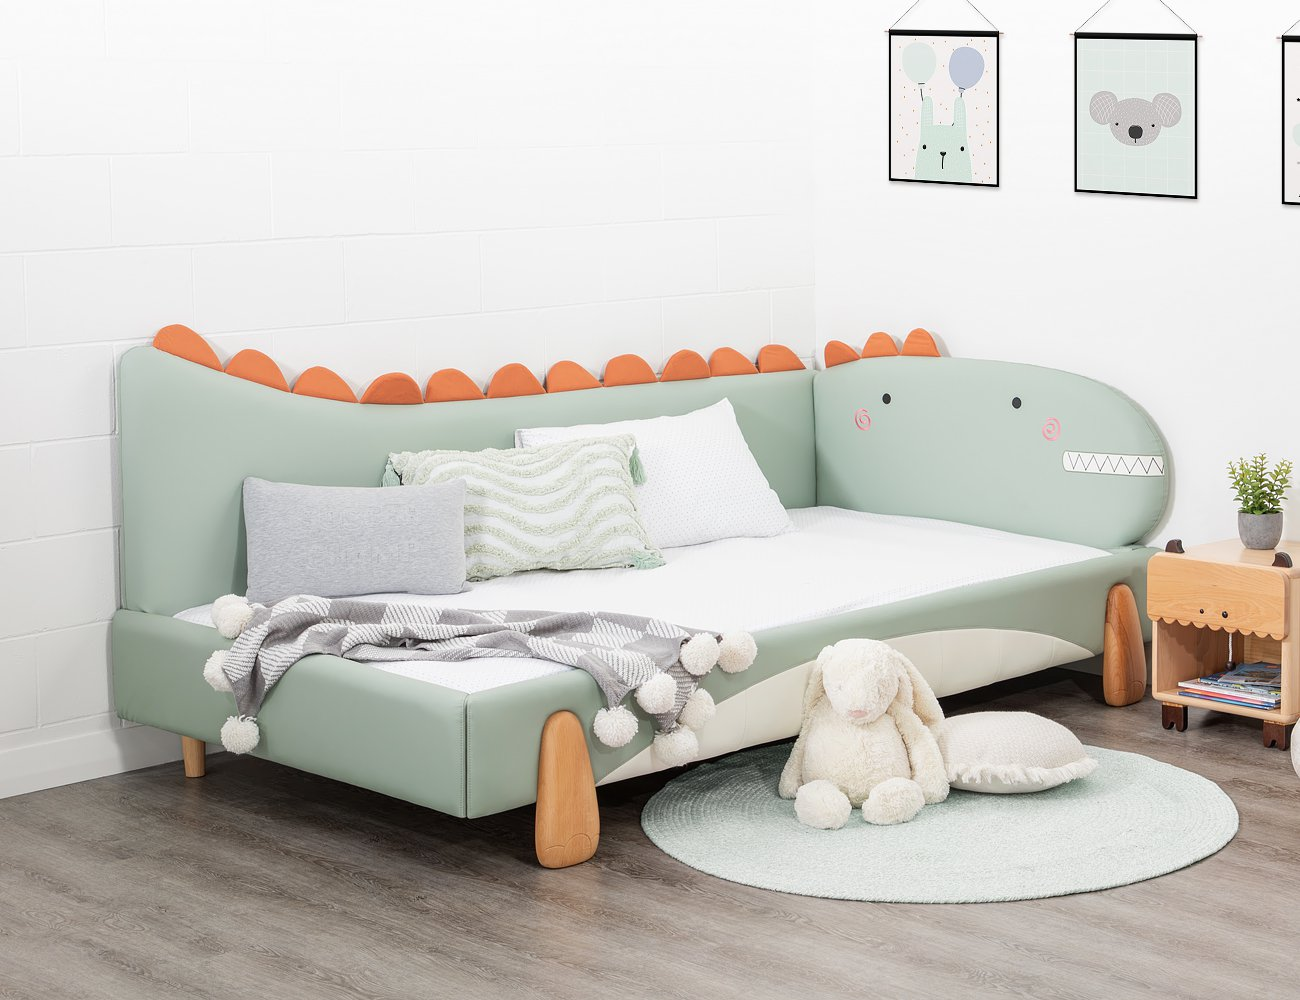 Dinosaur Single Bed Frame